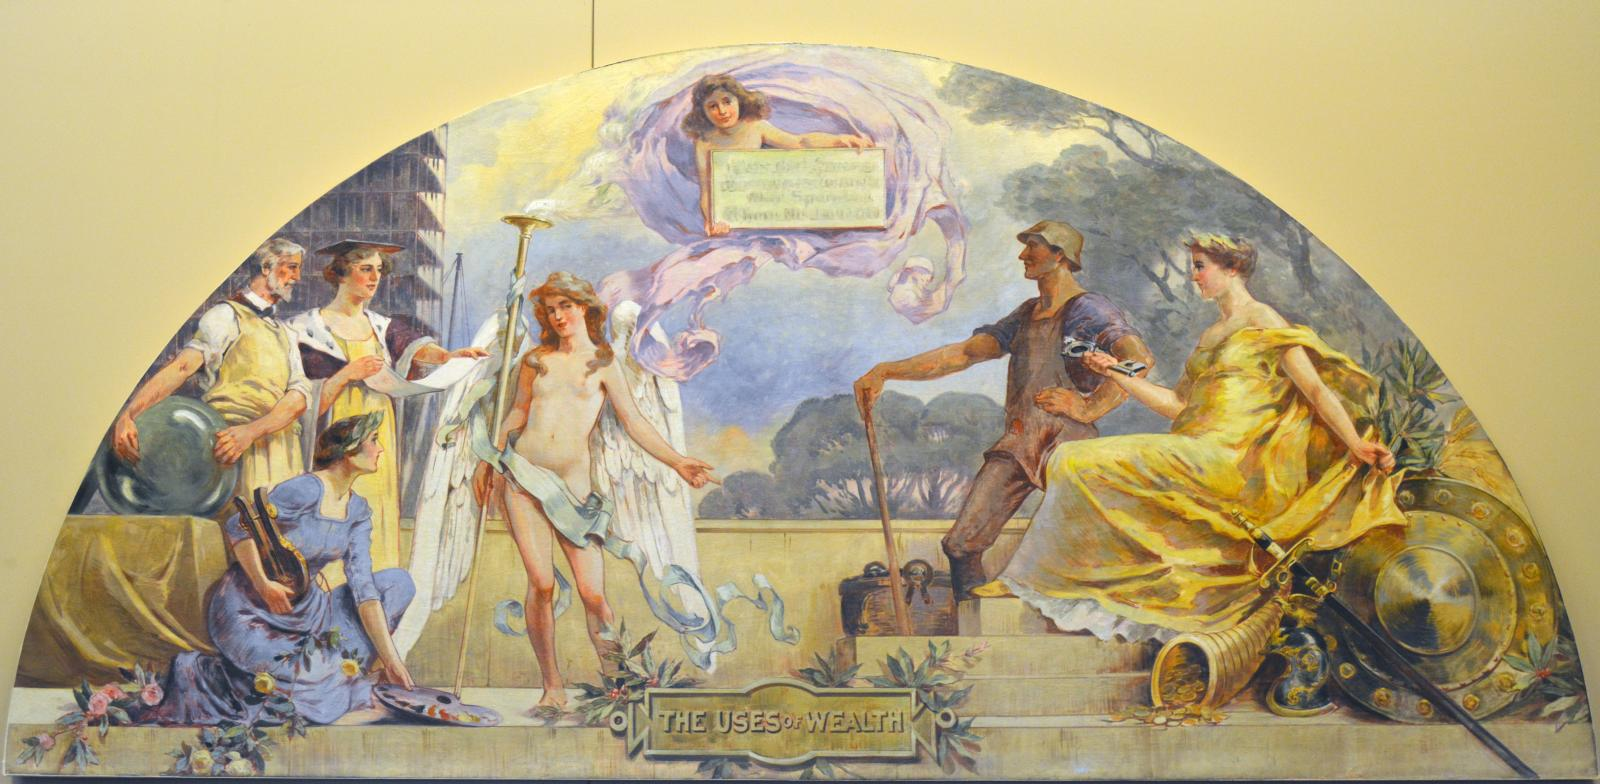 Lunette mural includes two men, four women, and an angel like child floating above the rest.